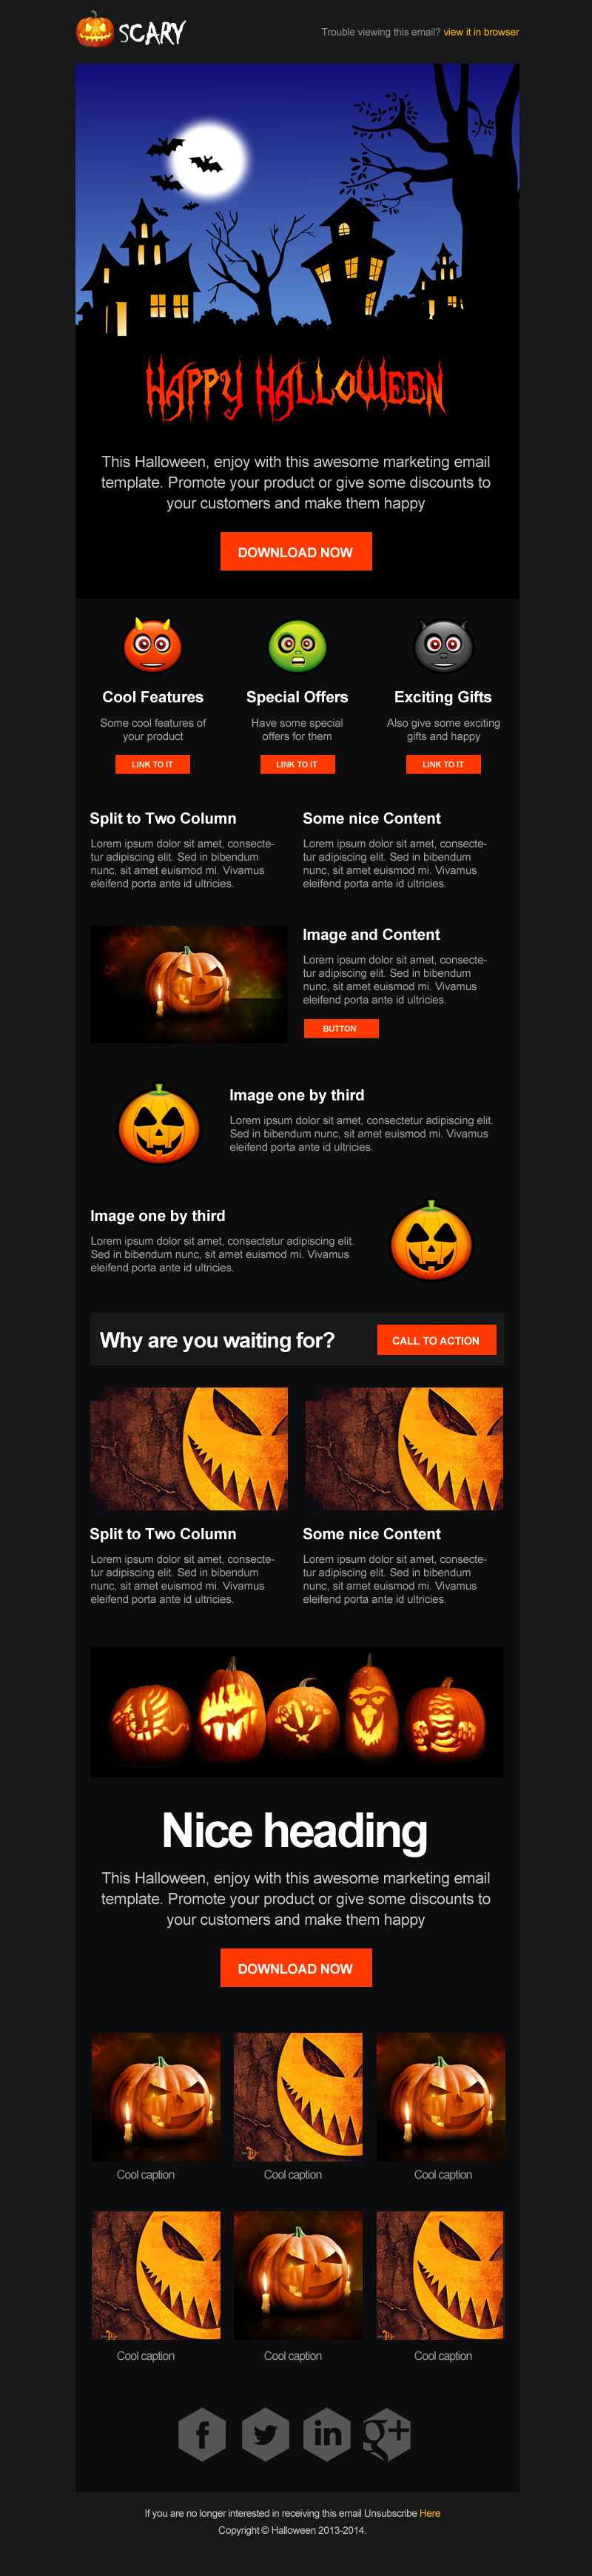 Scary - Halloween Email Campaign Template